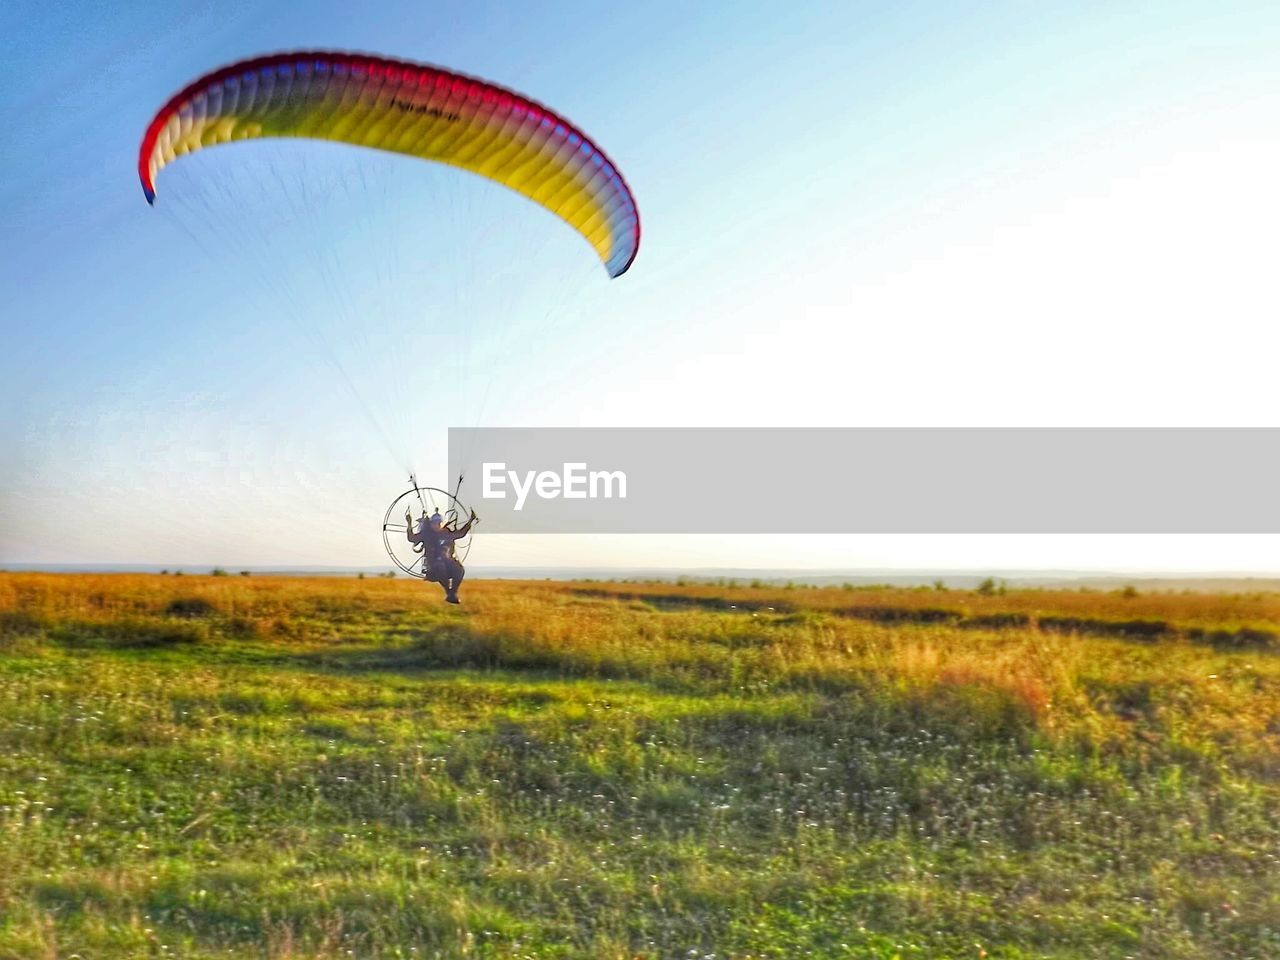 Man flying powered parachute over grassy field against clear sky